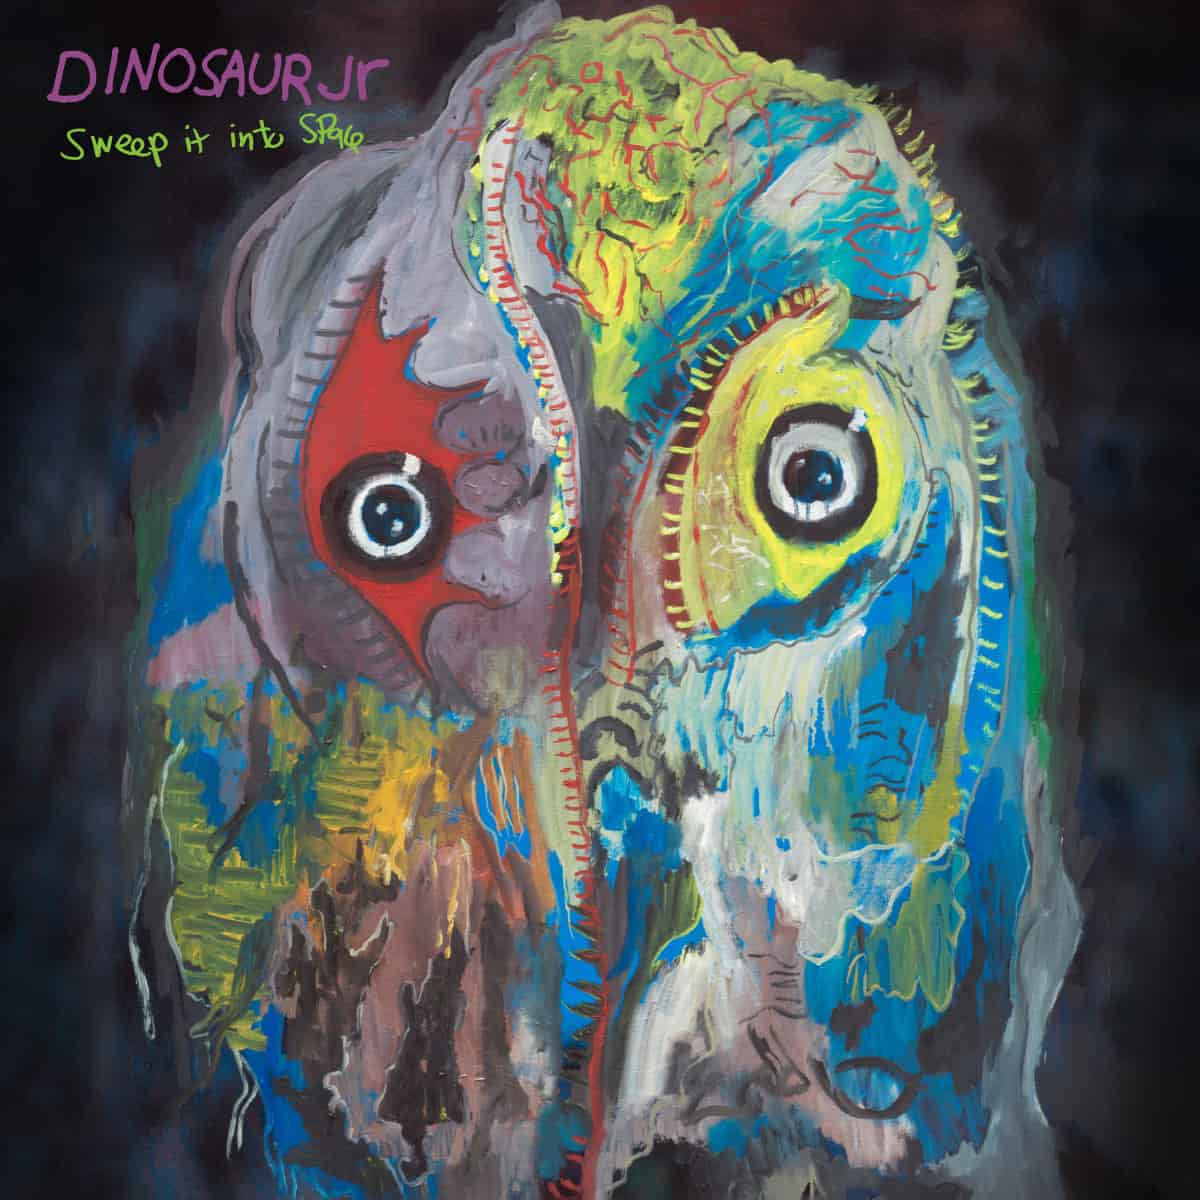 Dinosaur Jr.: Sweep It Into Space. Norman Records UK